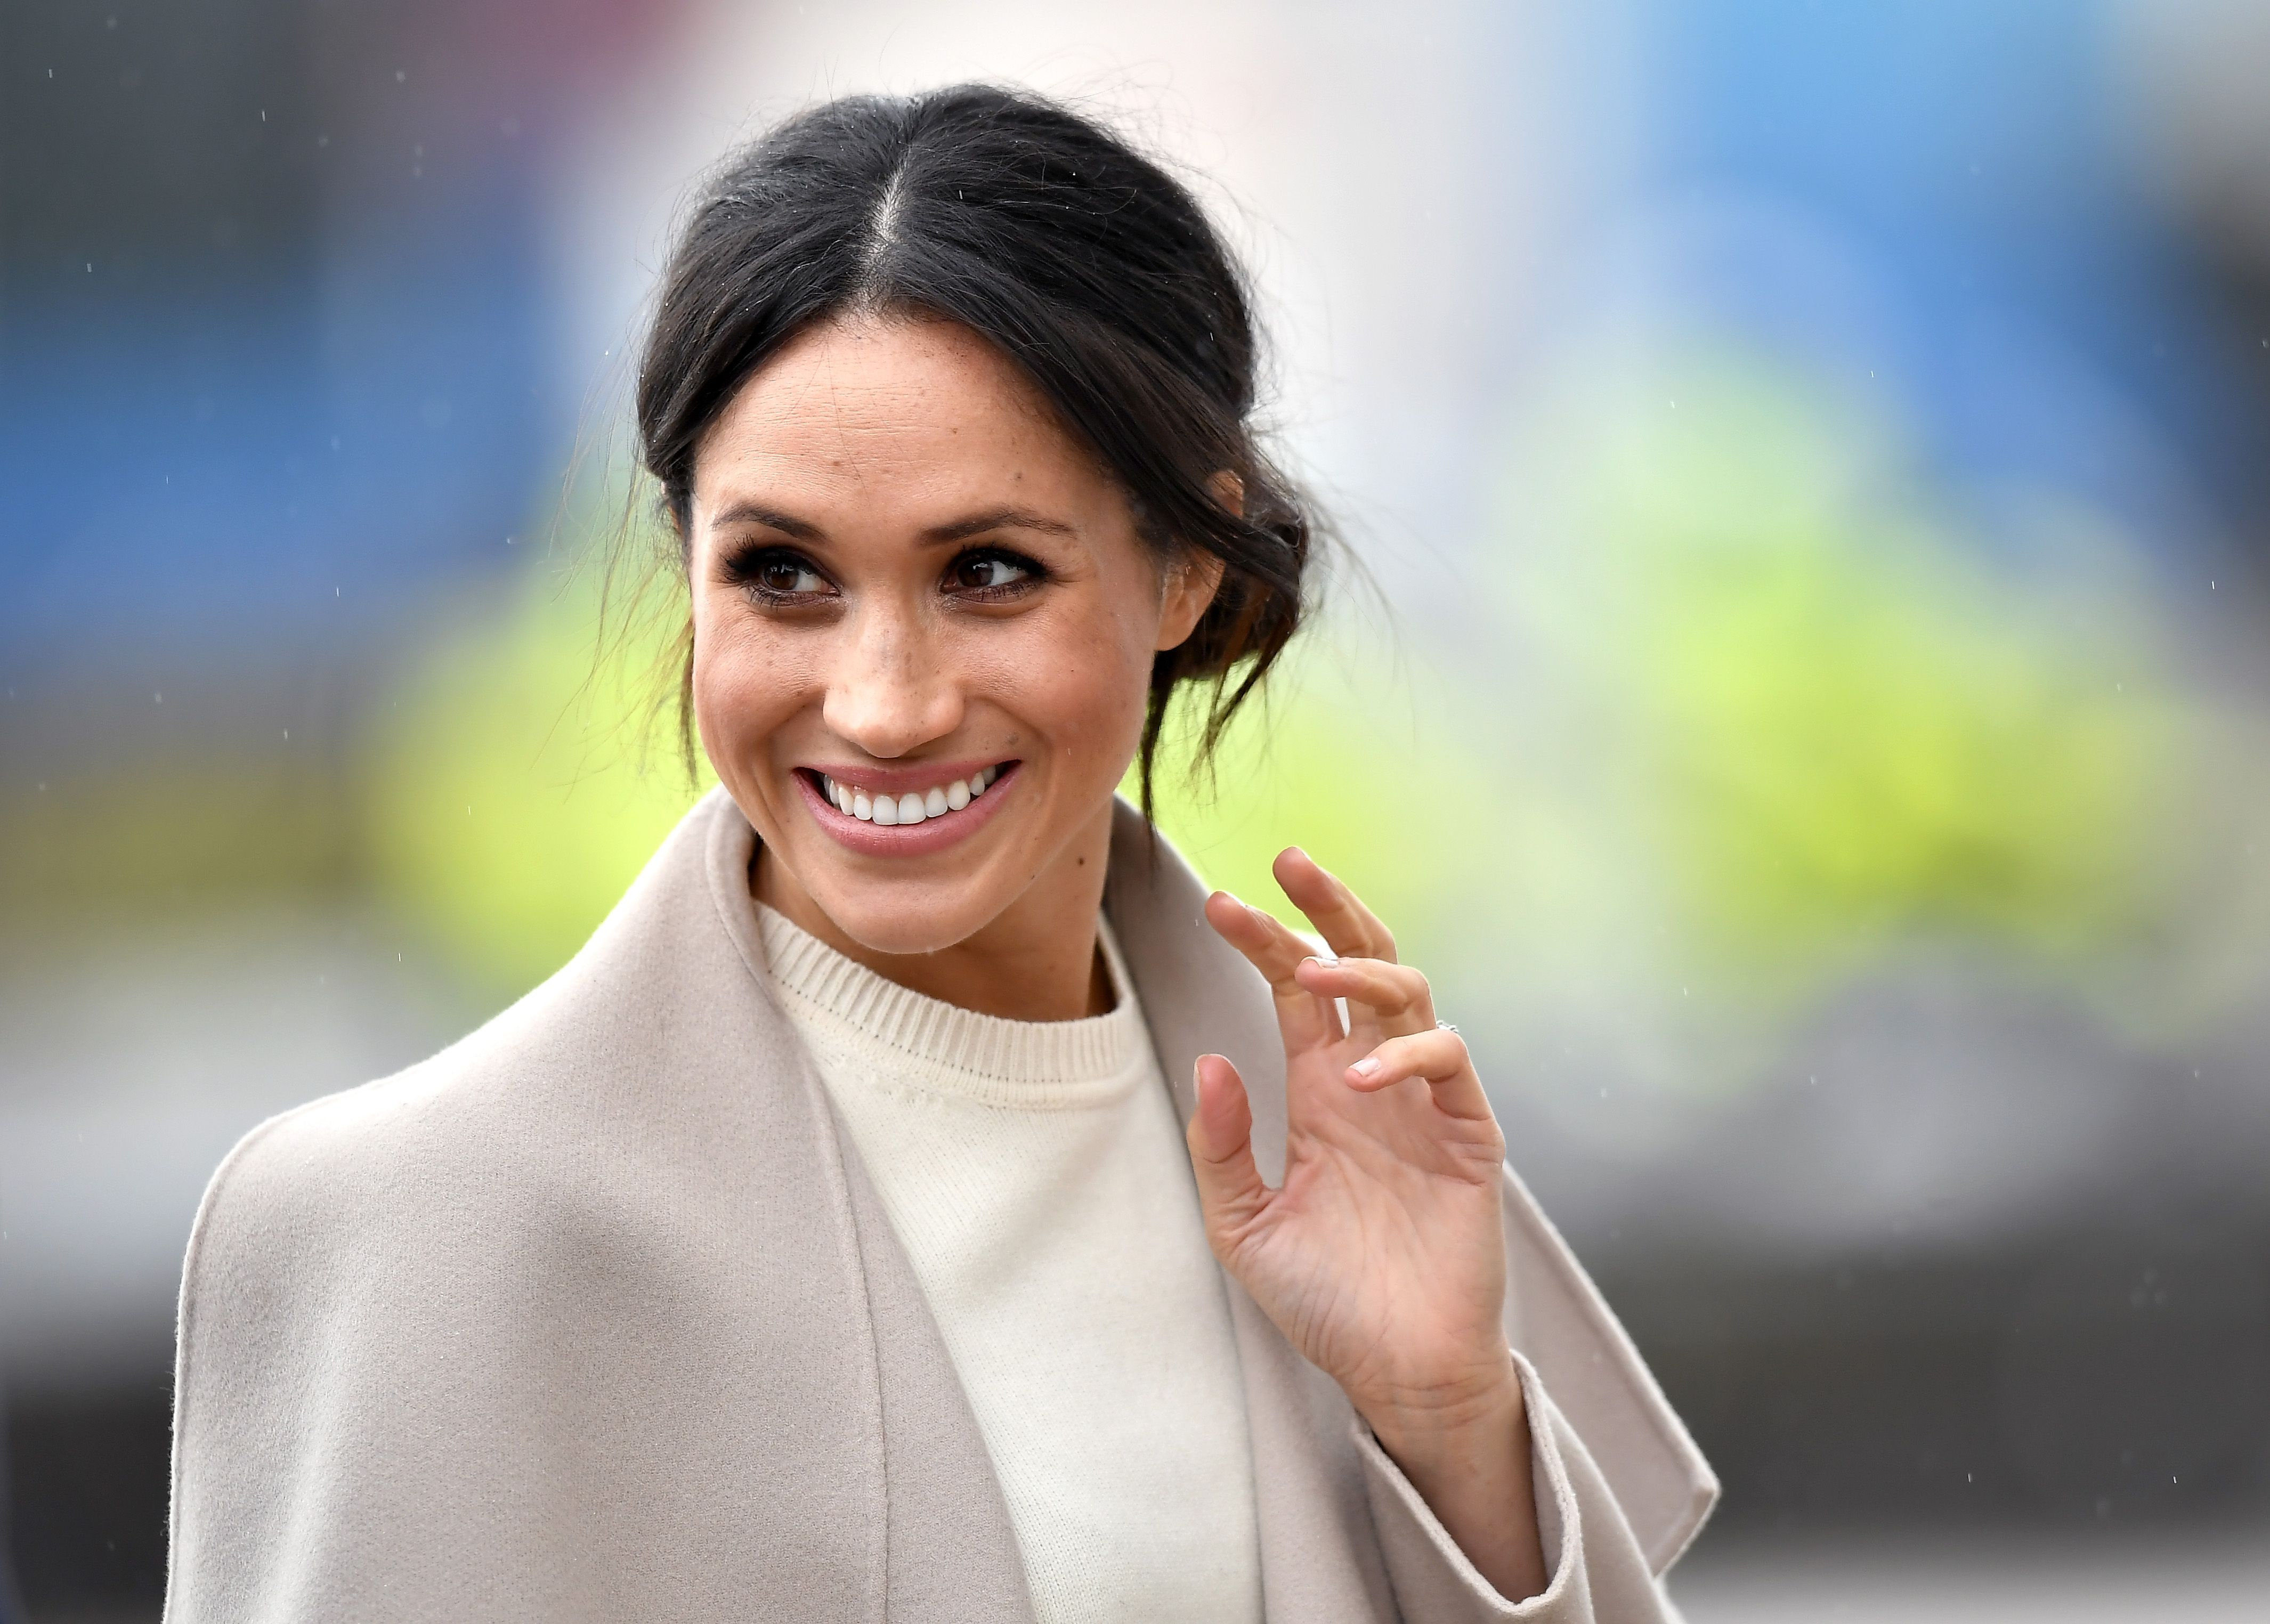 23 facts about meghan markle s life before she met prince harry meghan markle facts life before she met prince harry